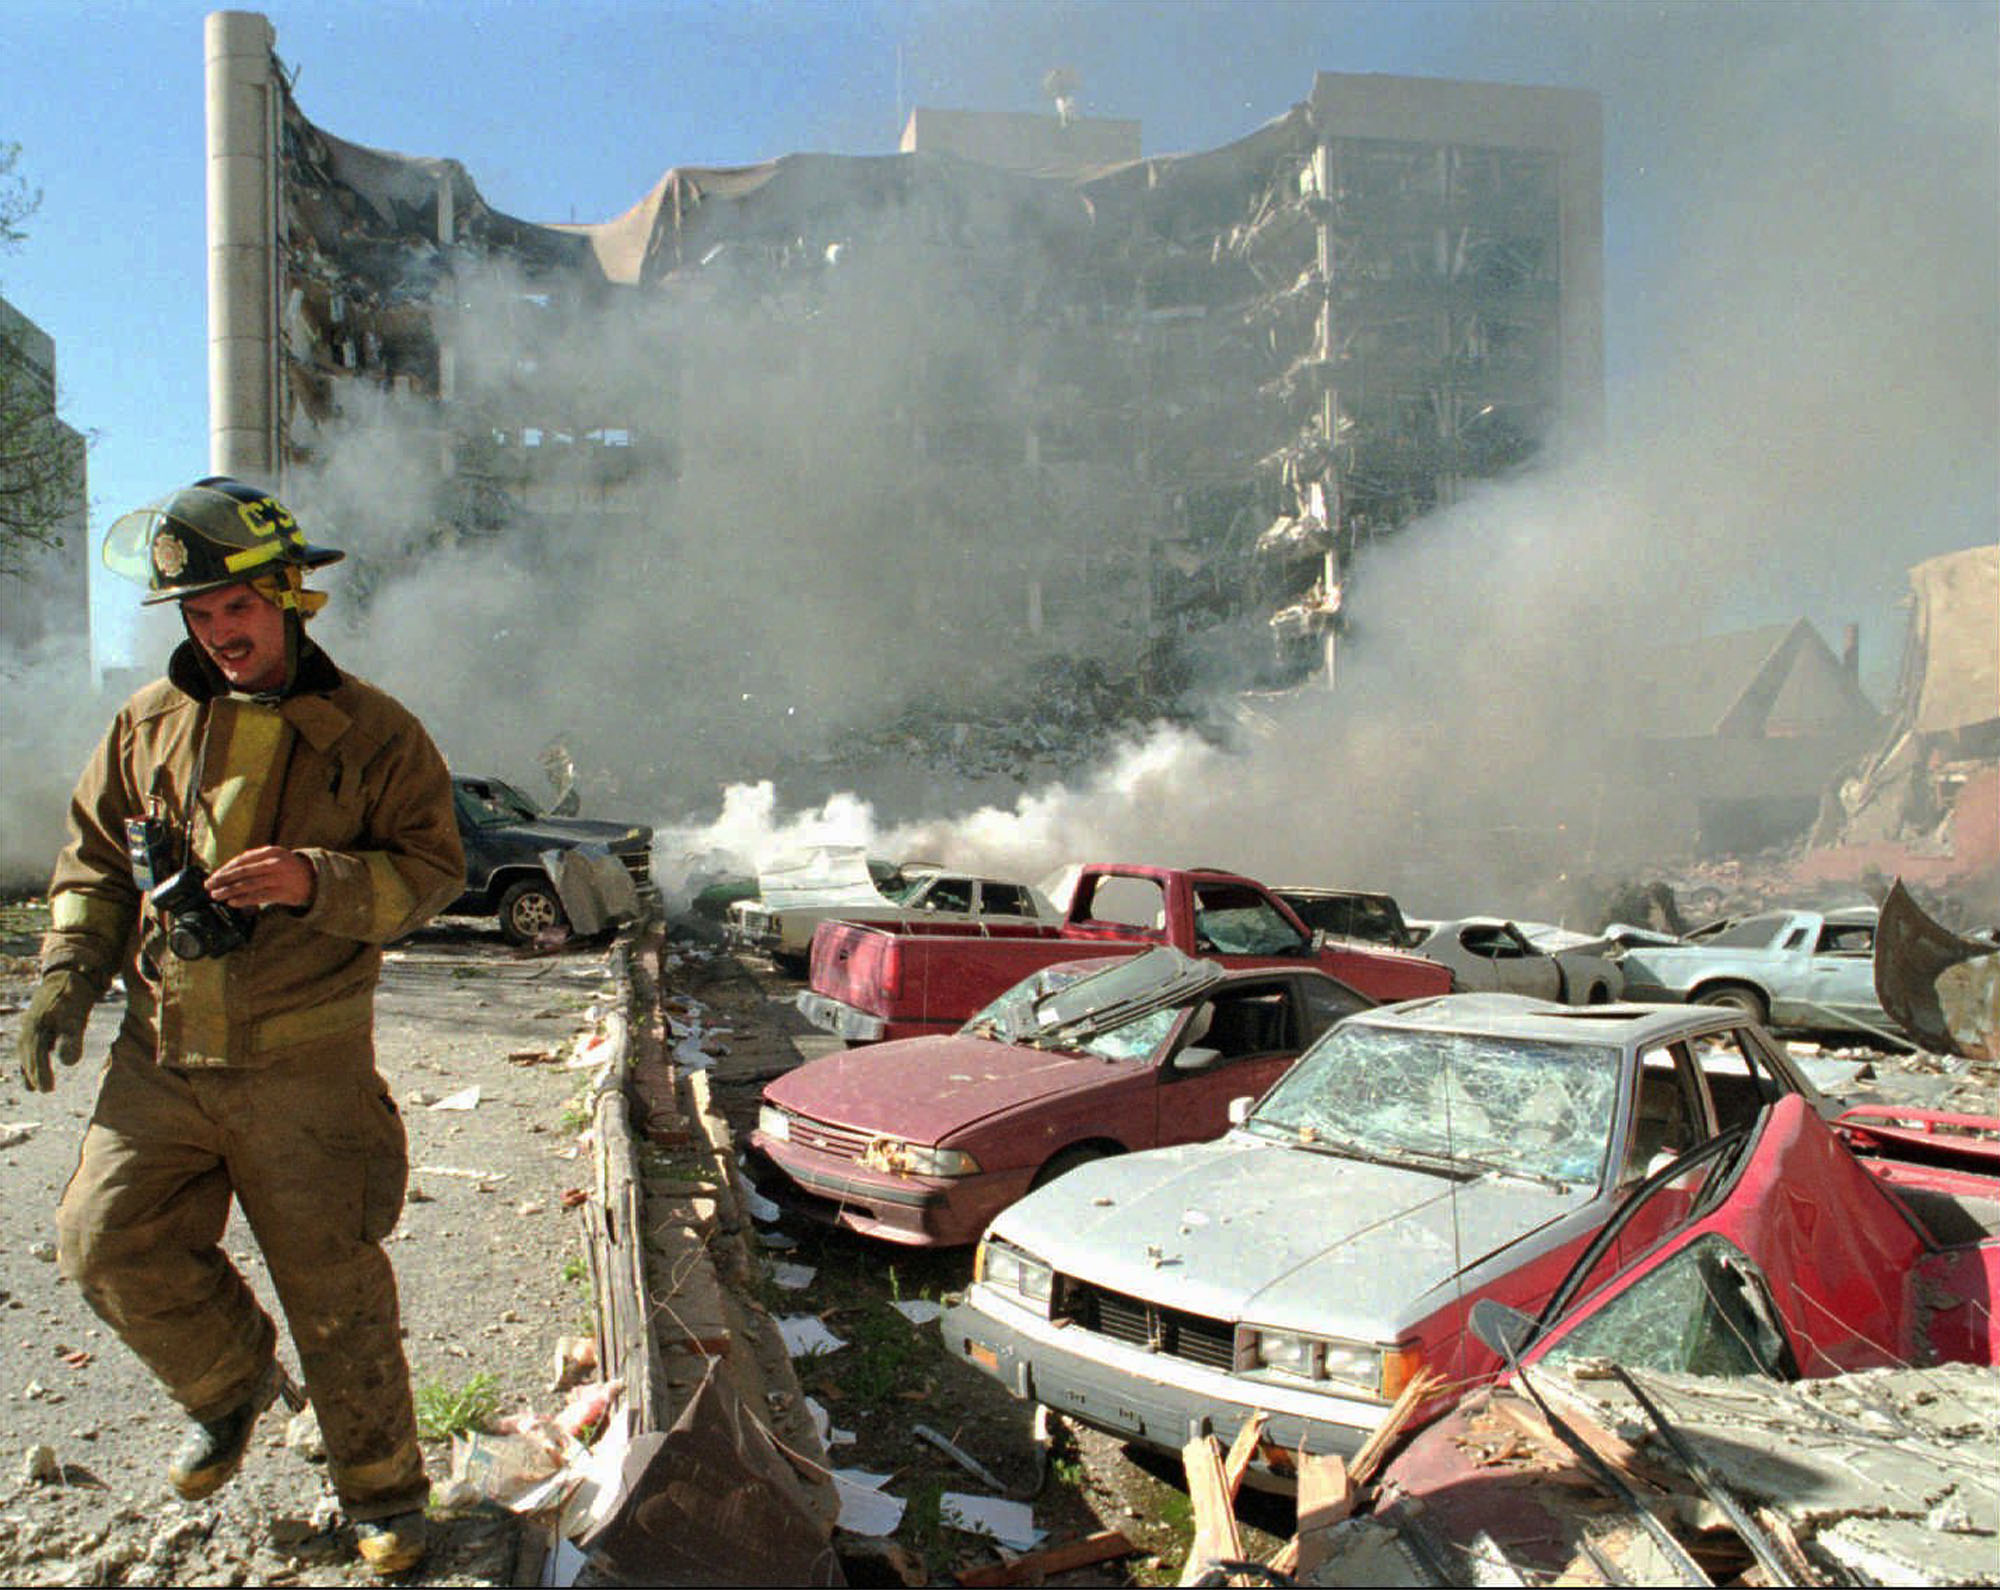 history of the bombing of the federal building in oklahoma city Oklahoma city bombing a bomb explodes destroying the north side of the alfred p murrah federal building 10:20 am – oklahoma highway oklahoma city.